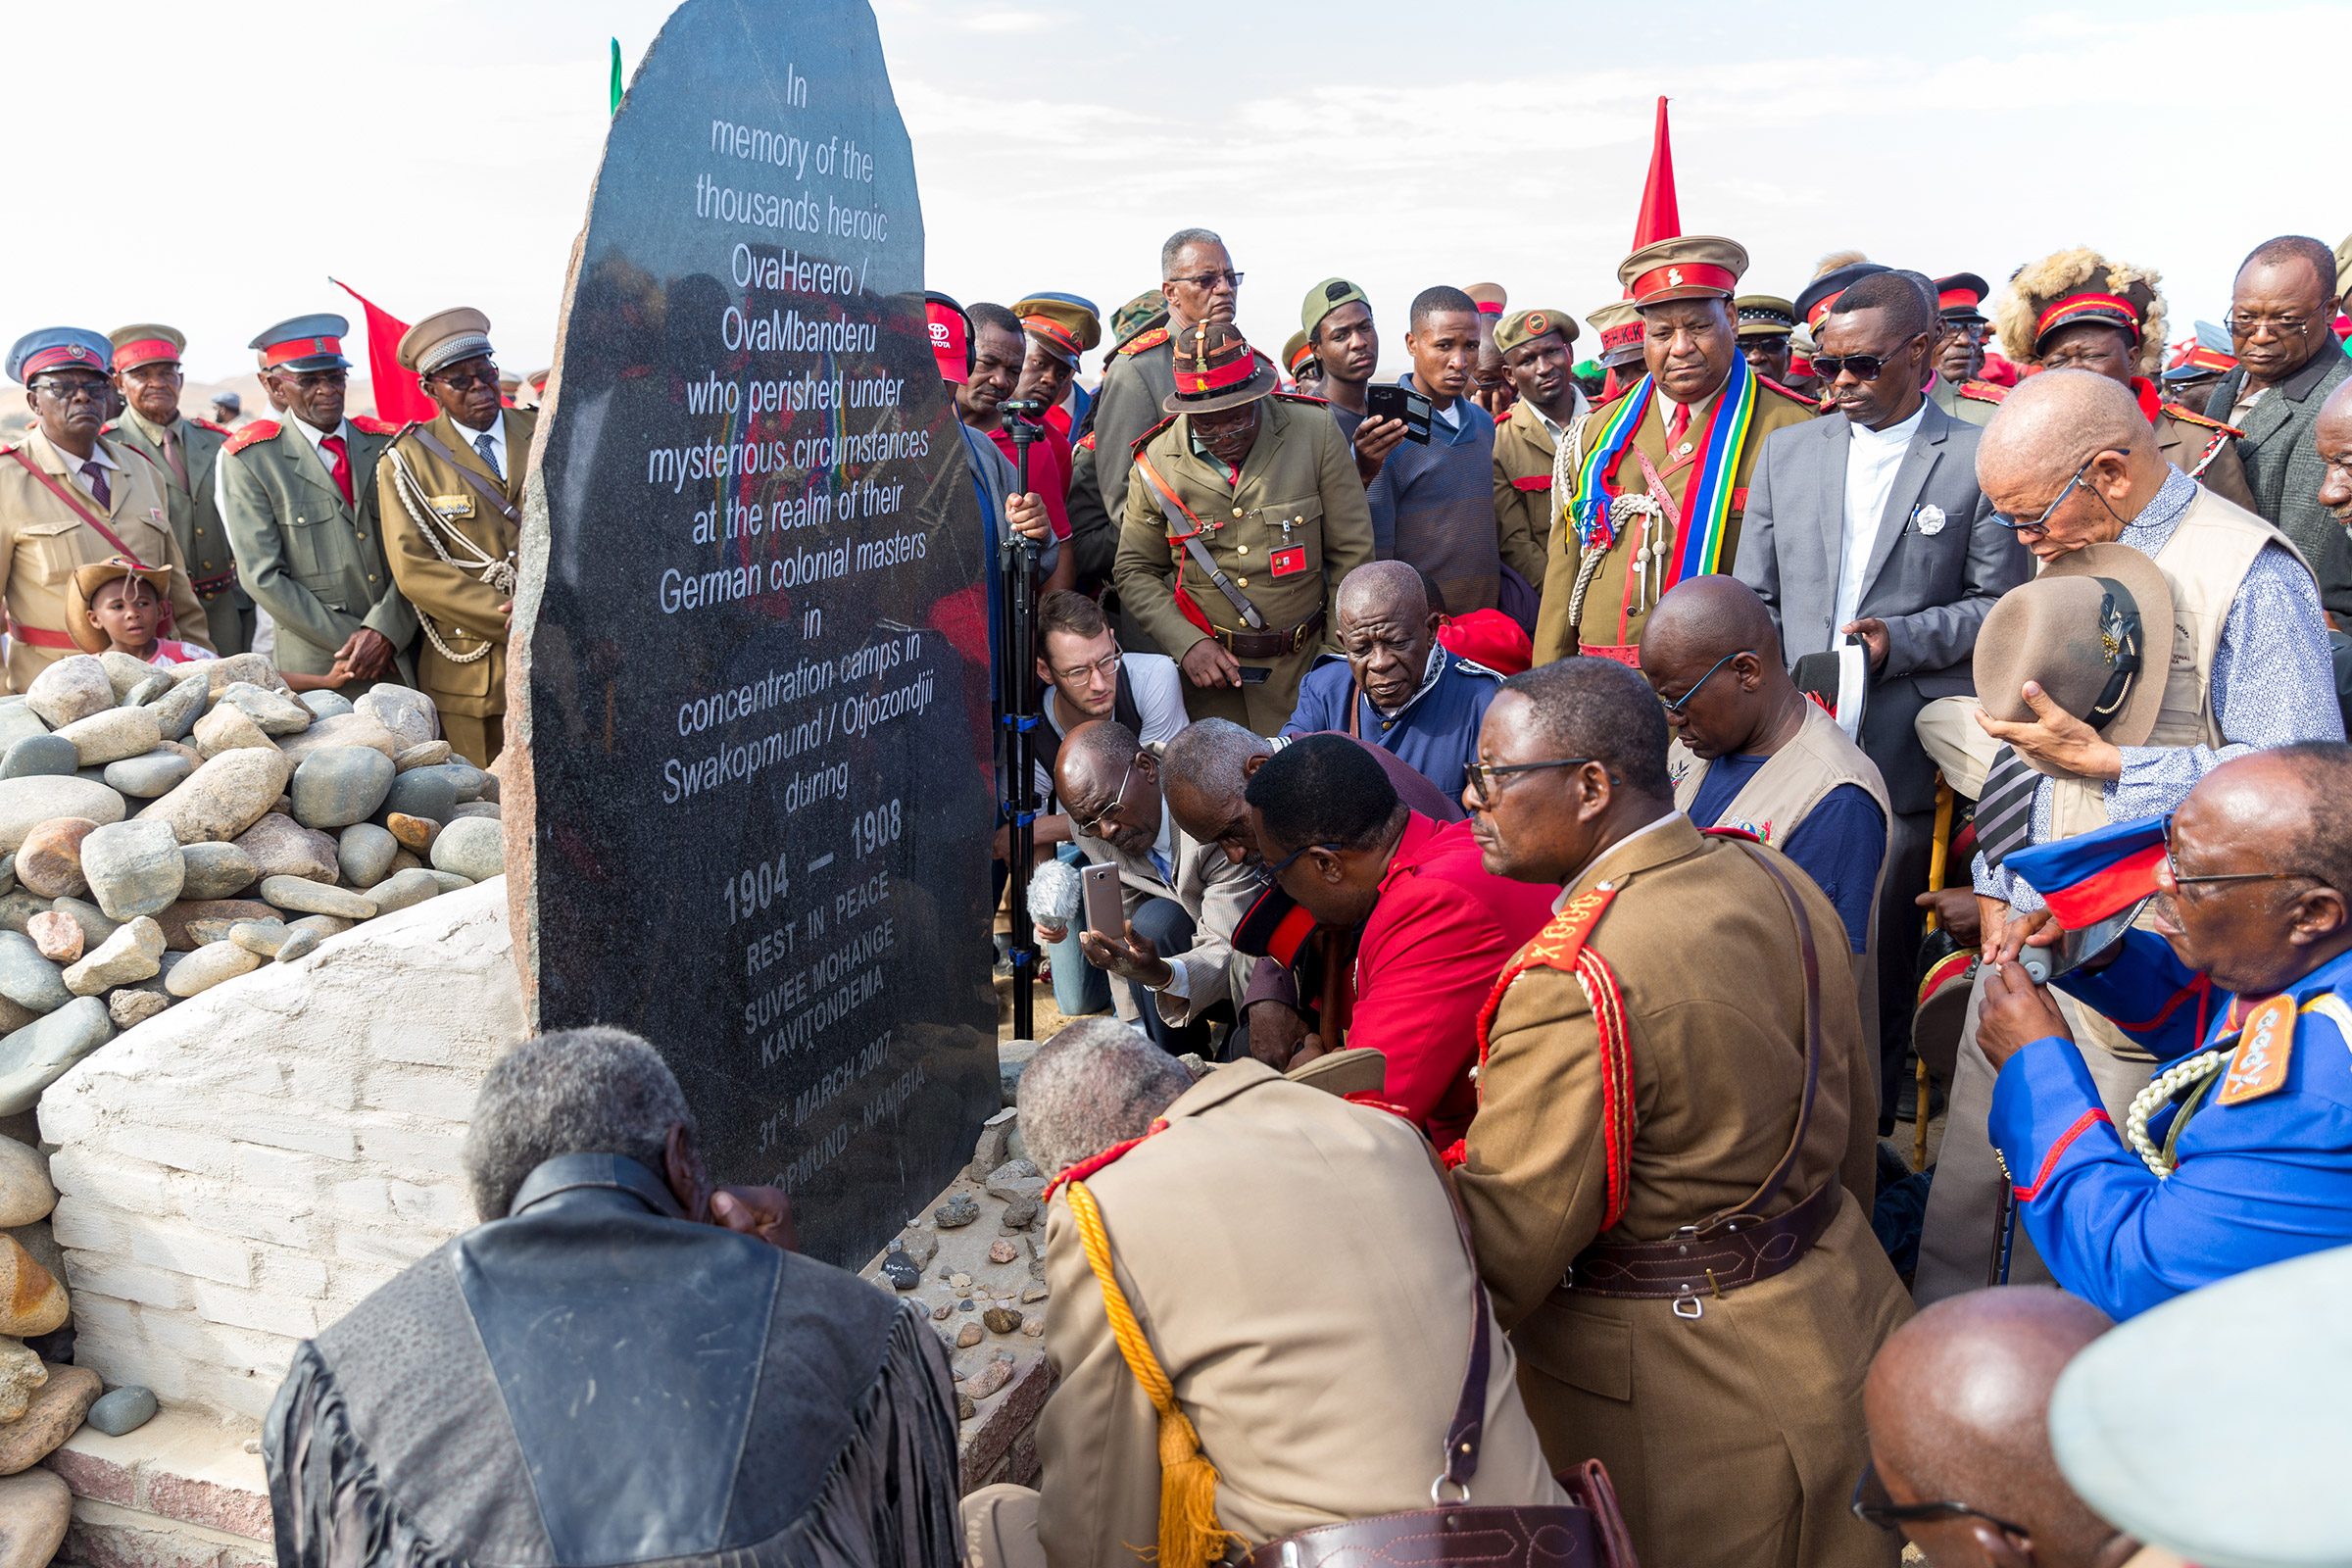 Paramount Chief Adv. Vekuii Rukoro, high-ranked chiefs and other members of the Herero and Nama communities gather around a monument in honor of the Ovaherero and Nama people that were victims of the genocide by German colonial forces at the Swakopmund Concentration Camp Memorial, in Swakopmund, Namibia, as a part of the Reparation Walk 2019 on March 30, 2019.